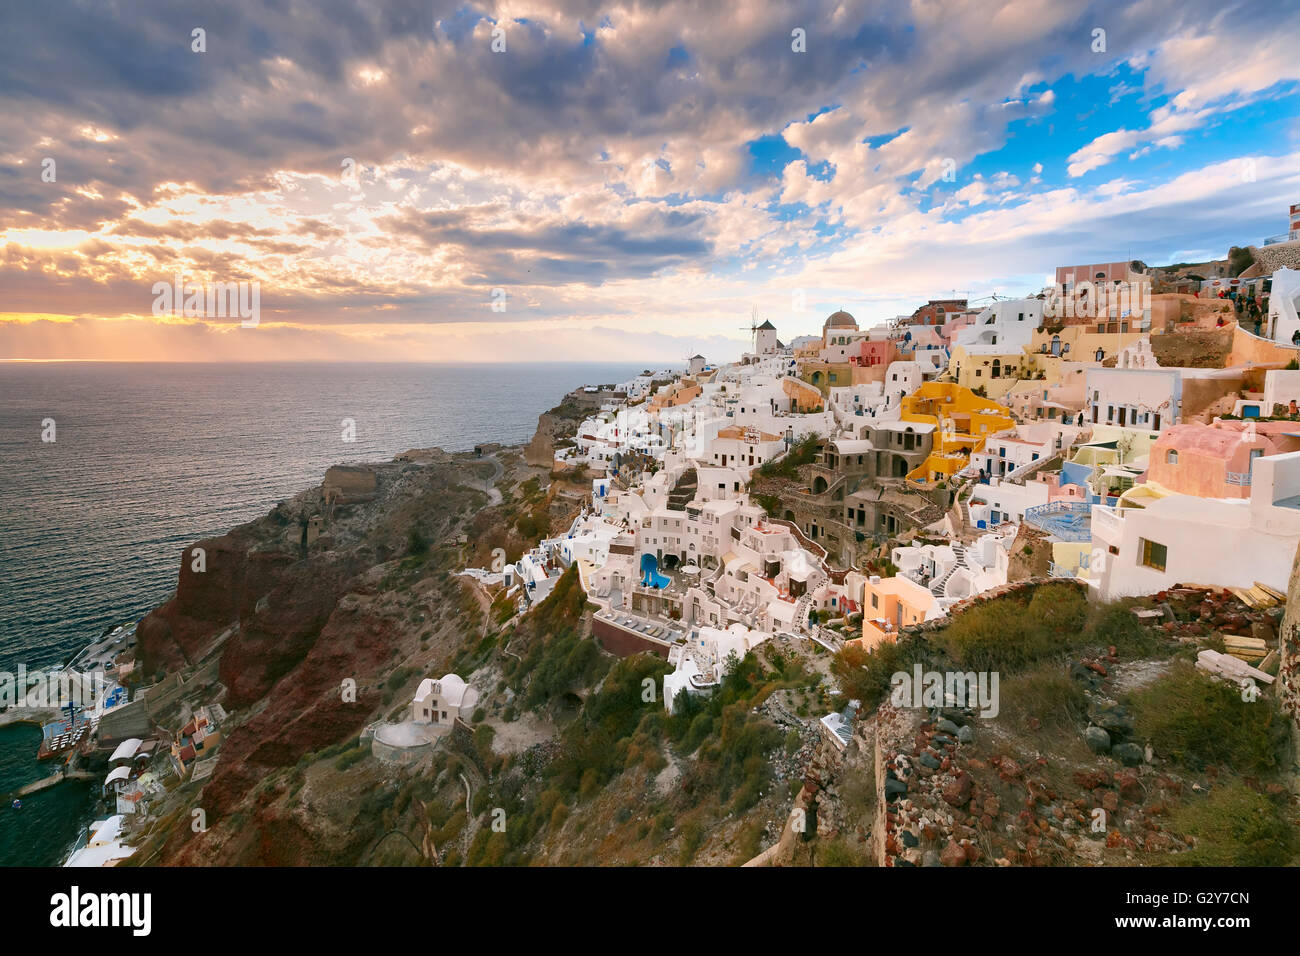 Oia or Ia at sunset, Santorini, Greece - Stock Image